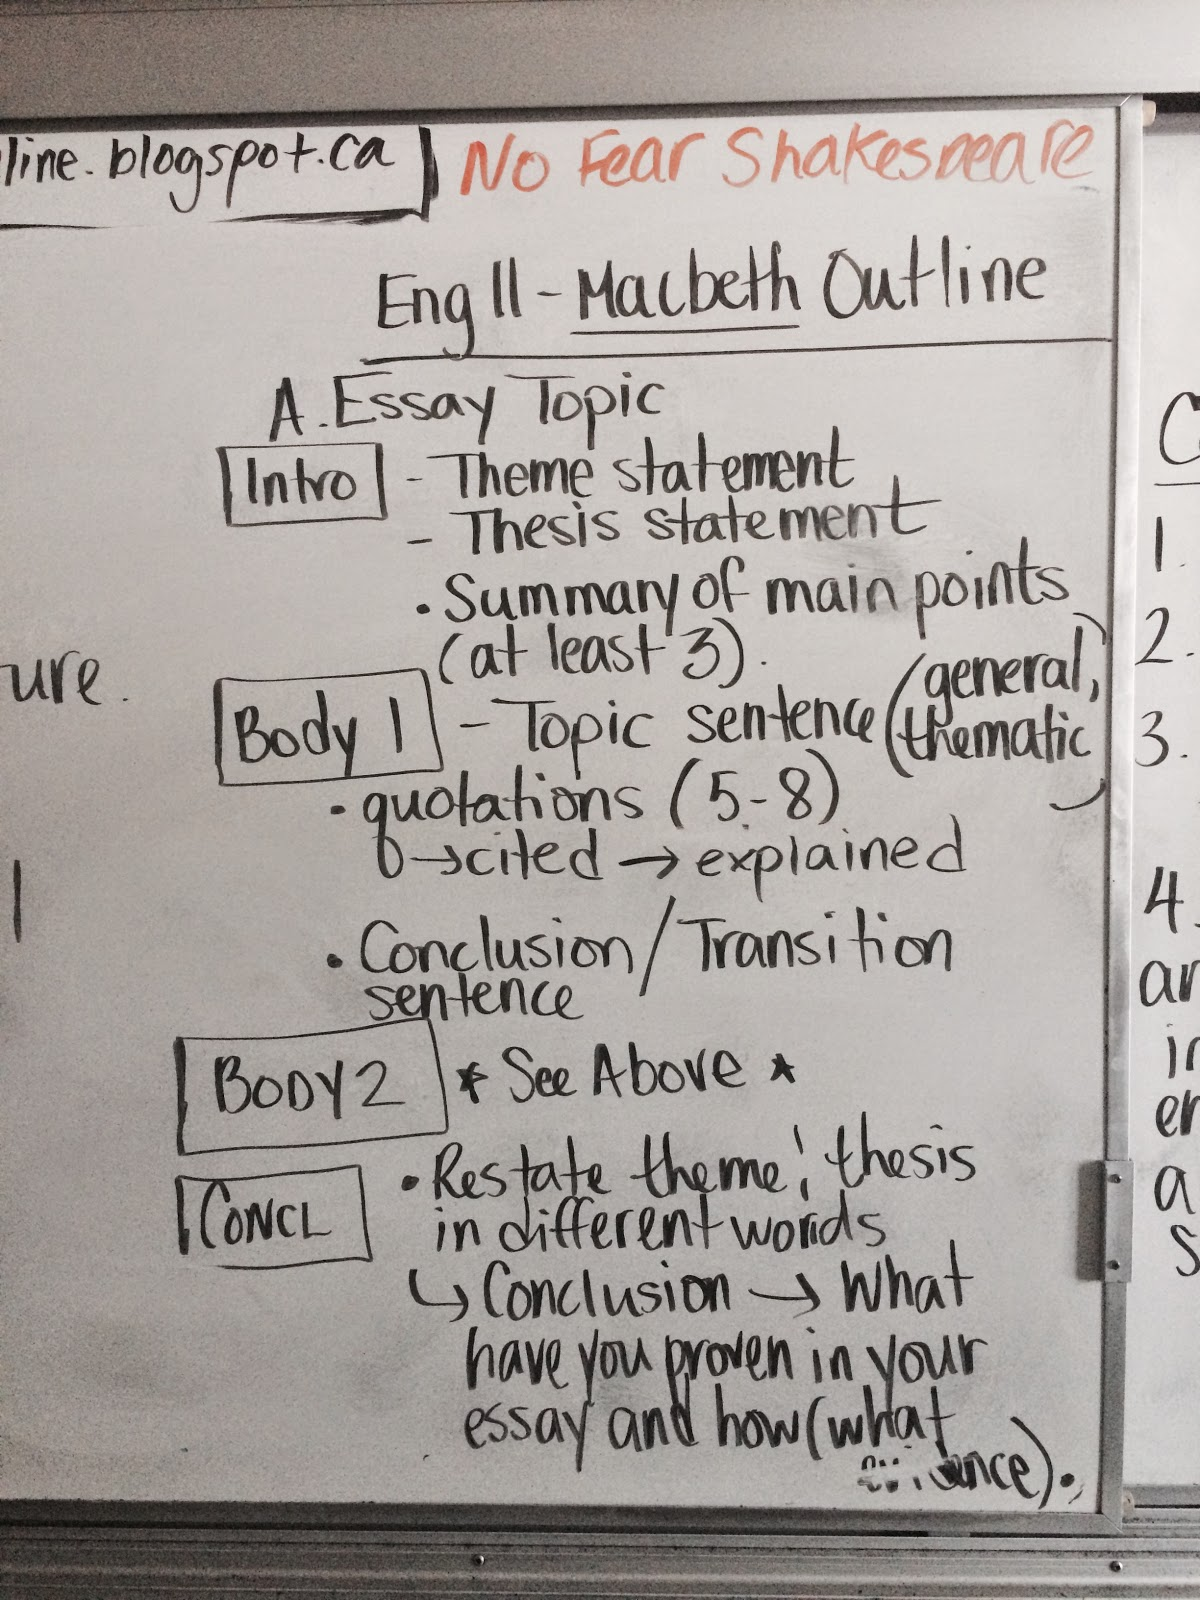 macpherson online  english 11 macbeth 1 final assignment due at the end of class a one full body paragraph 15 20 sentences 4 8 quotations i i c e